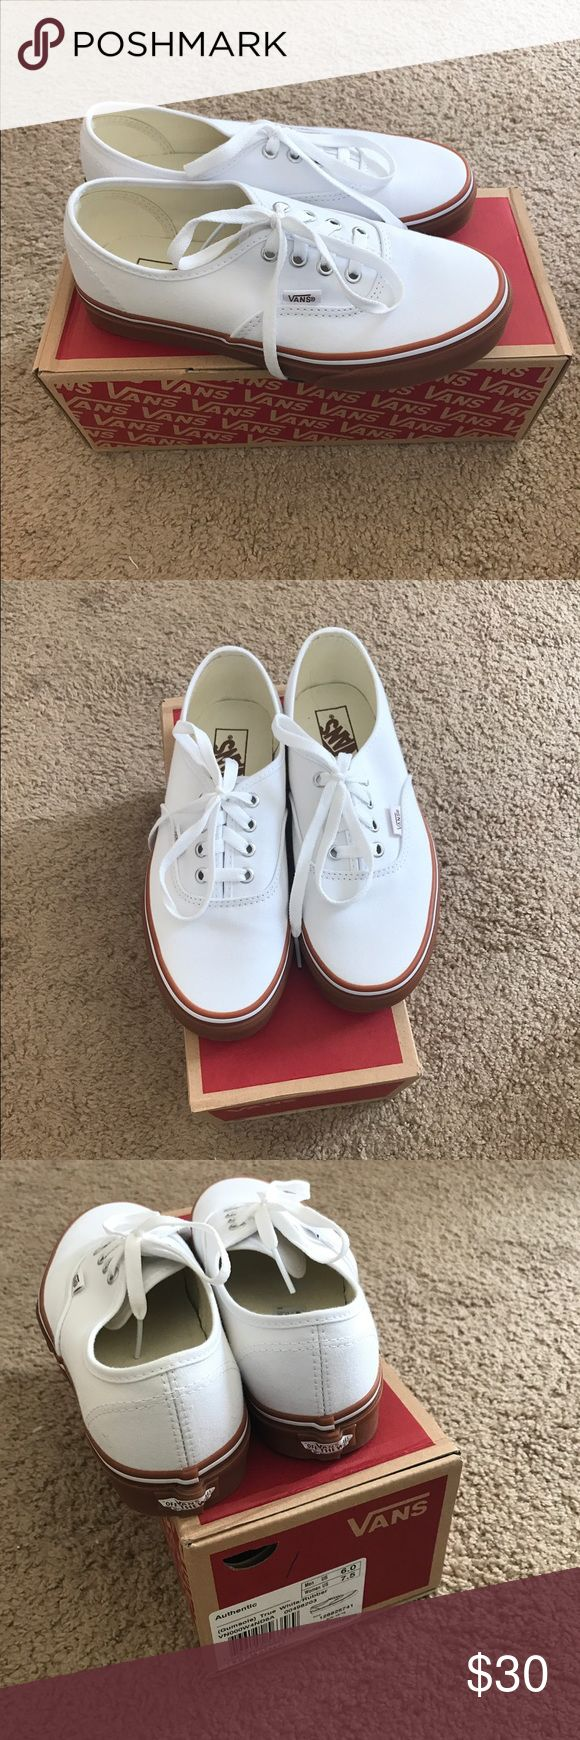 All white VANS with gum sole Women's size 7.5 all white vans with gum bottoms. Brand new never worn Vans Shoes Sneakers